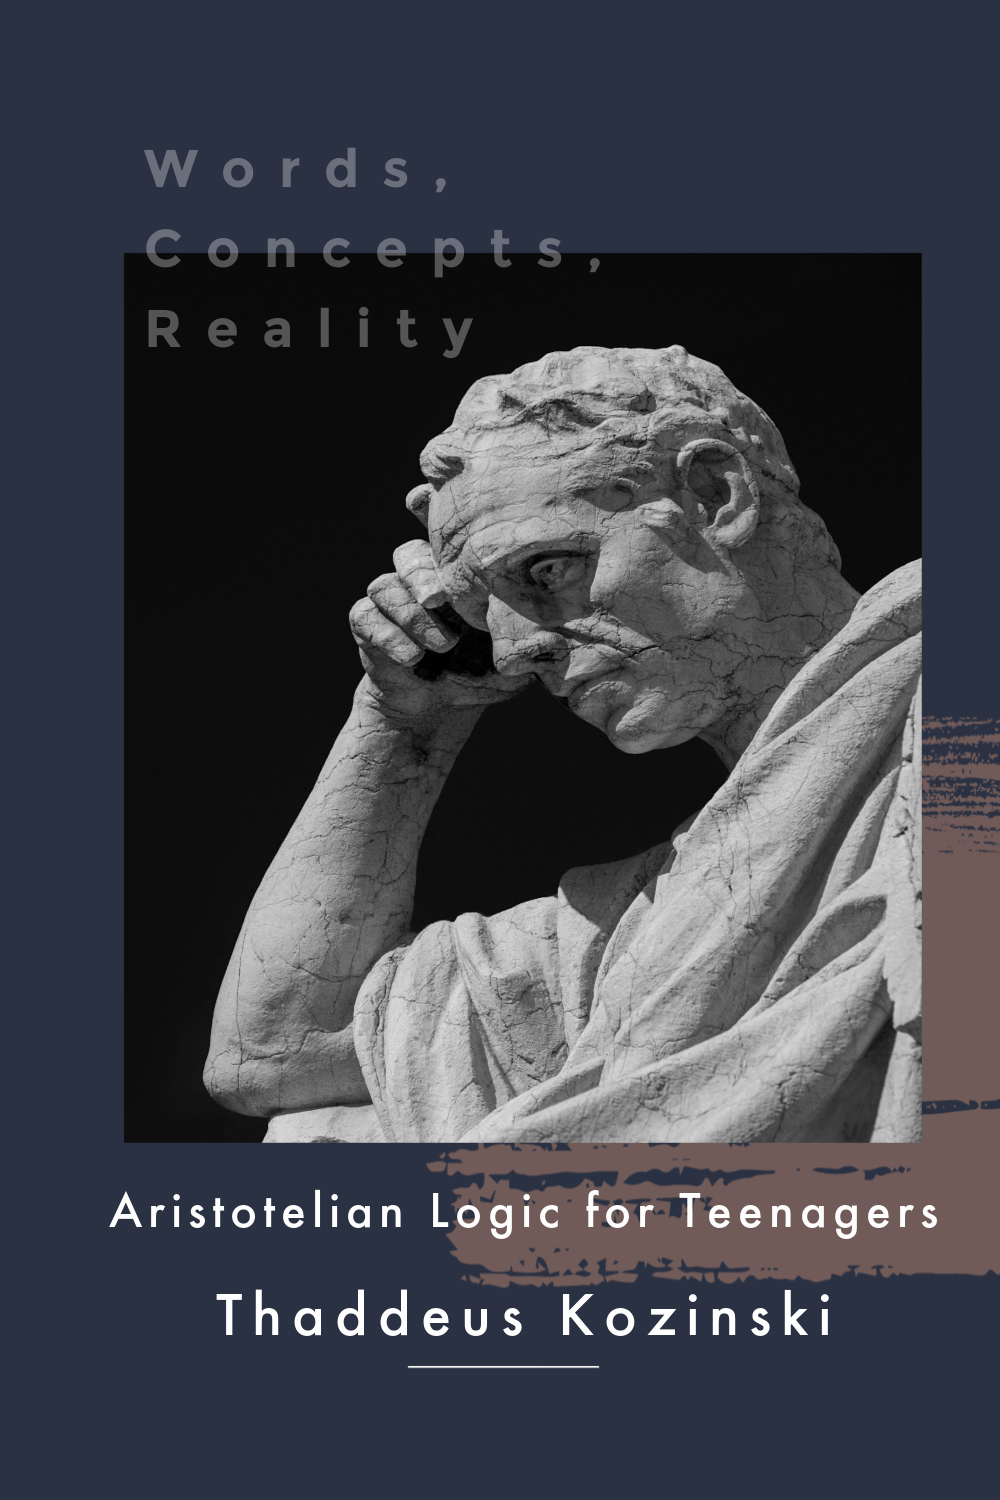 Words, Concepts, Reality: Aristotelian Logic for Teenagers